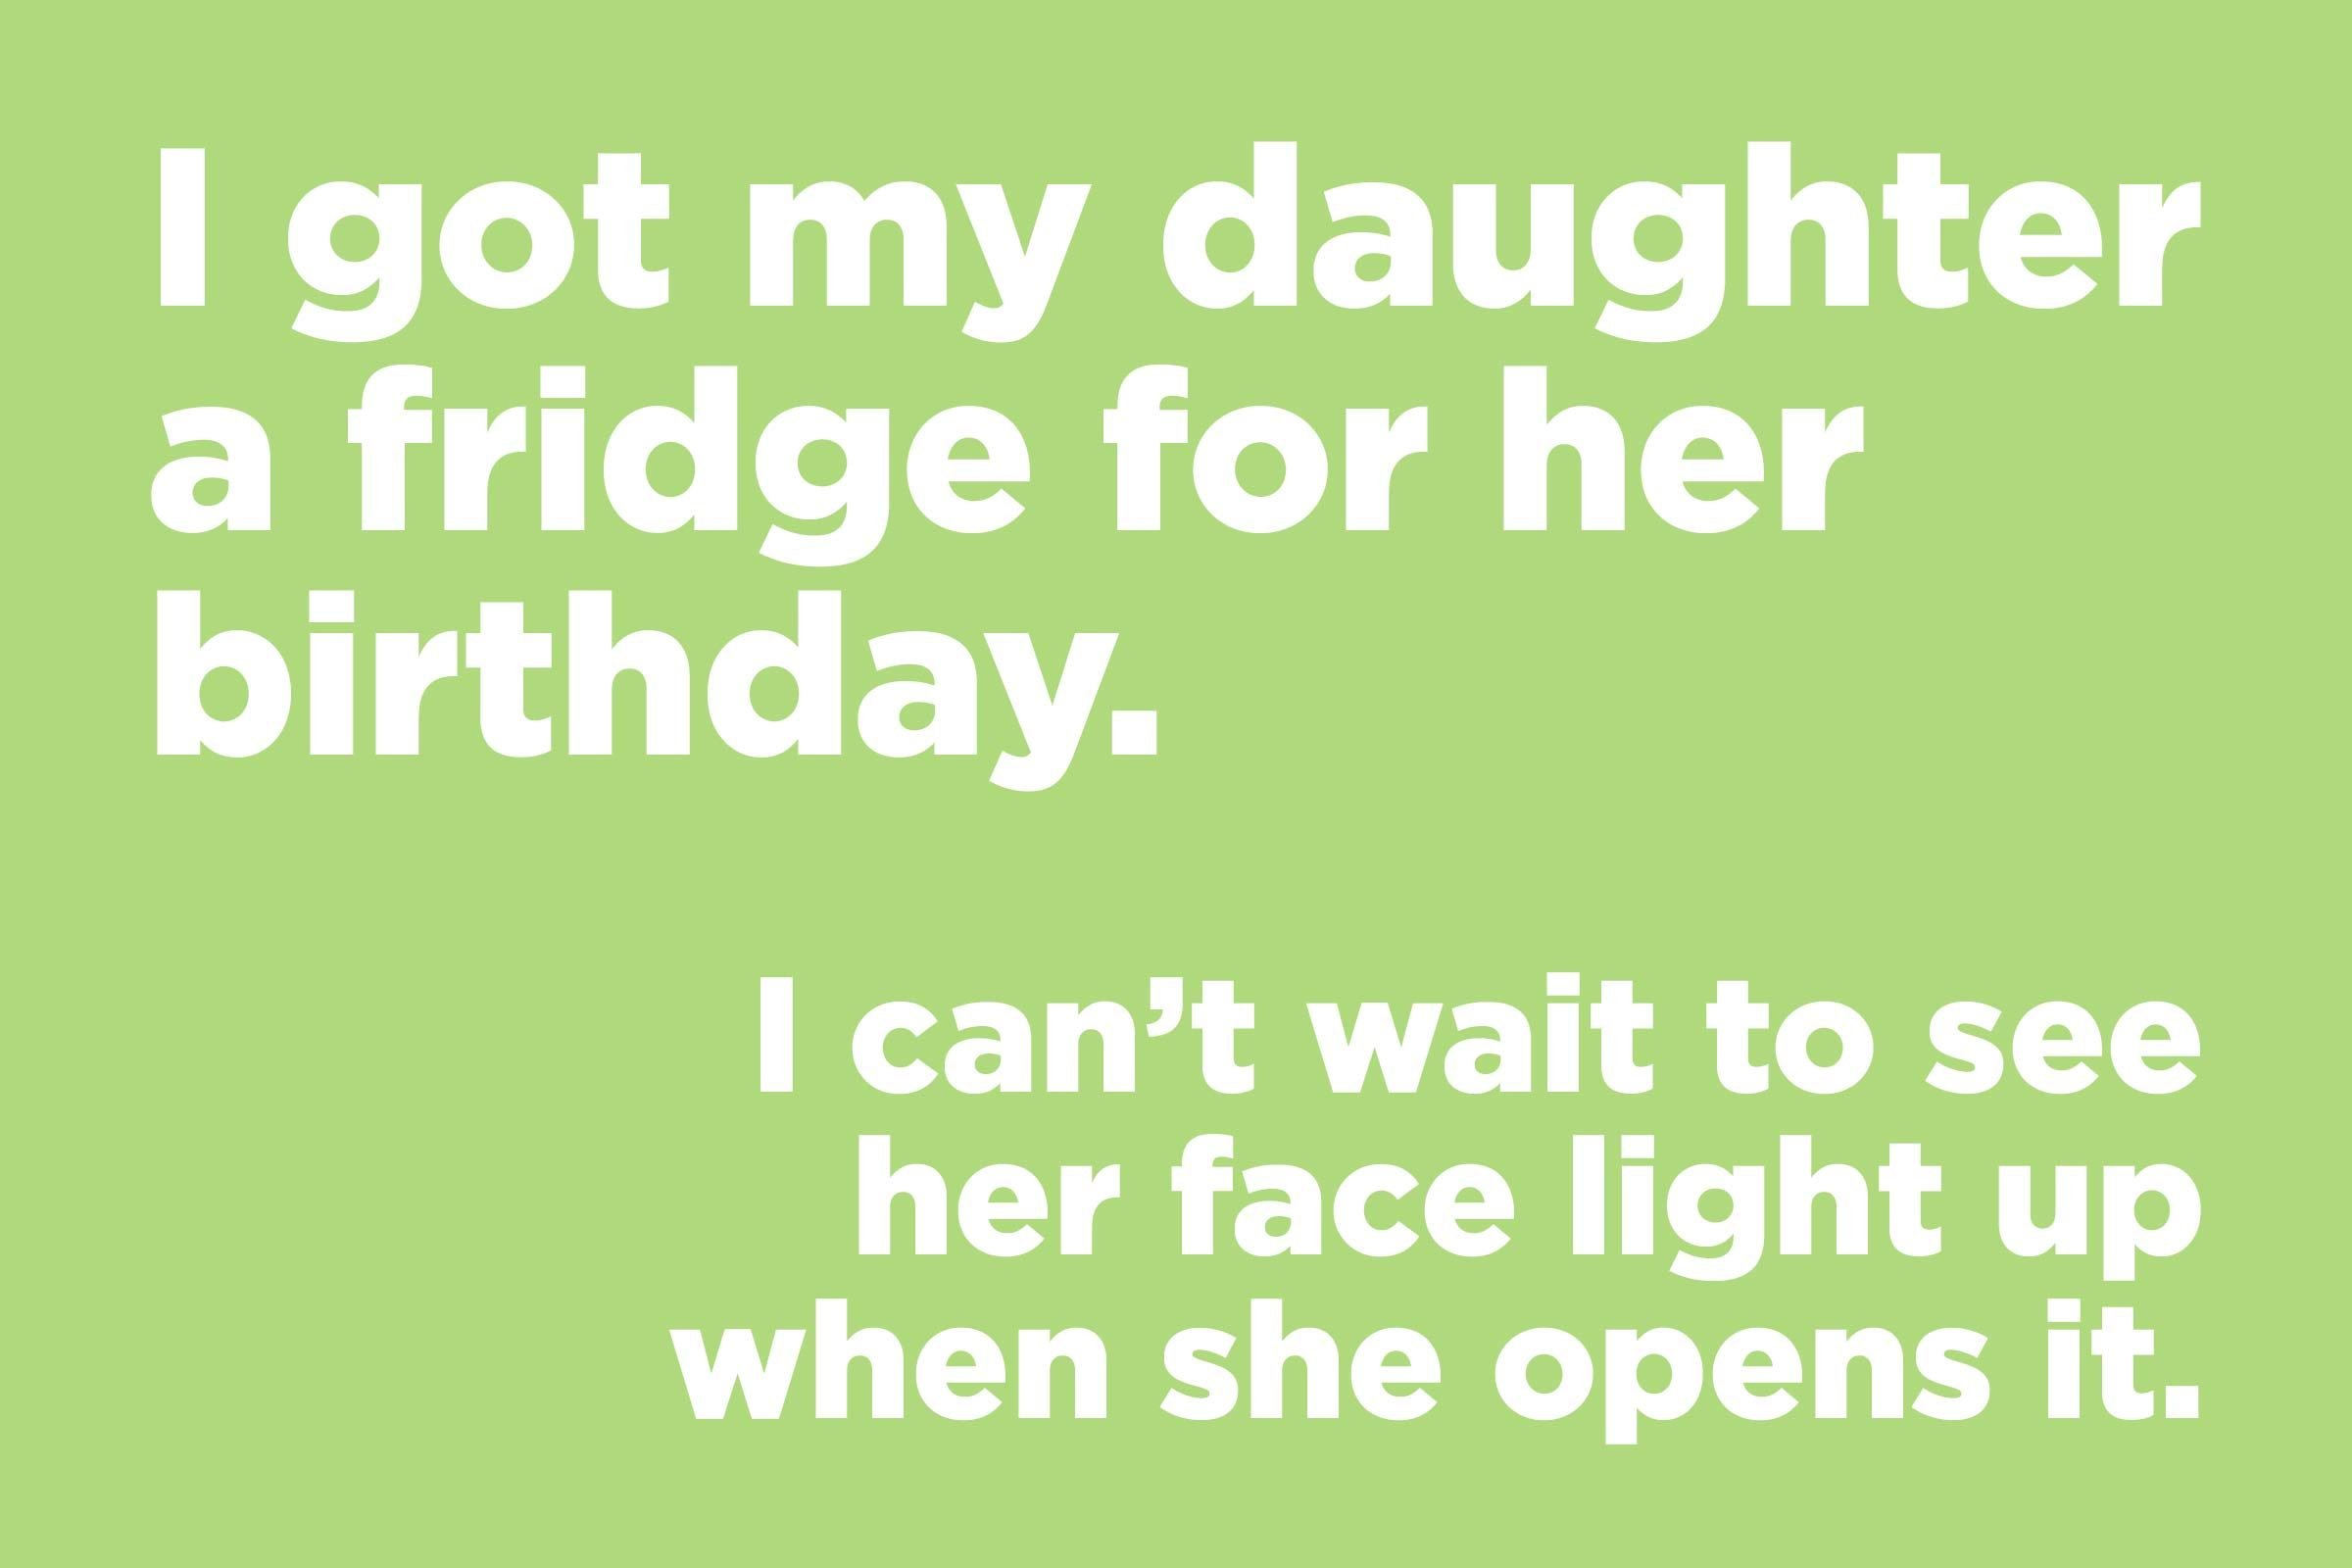 I got my daughter a fridge for her birthday.